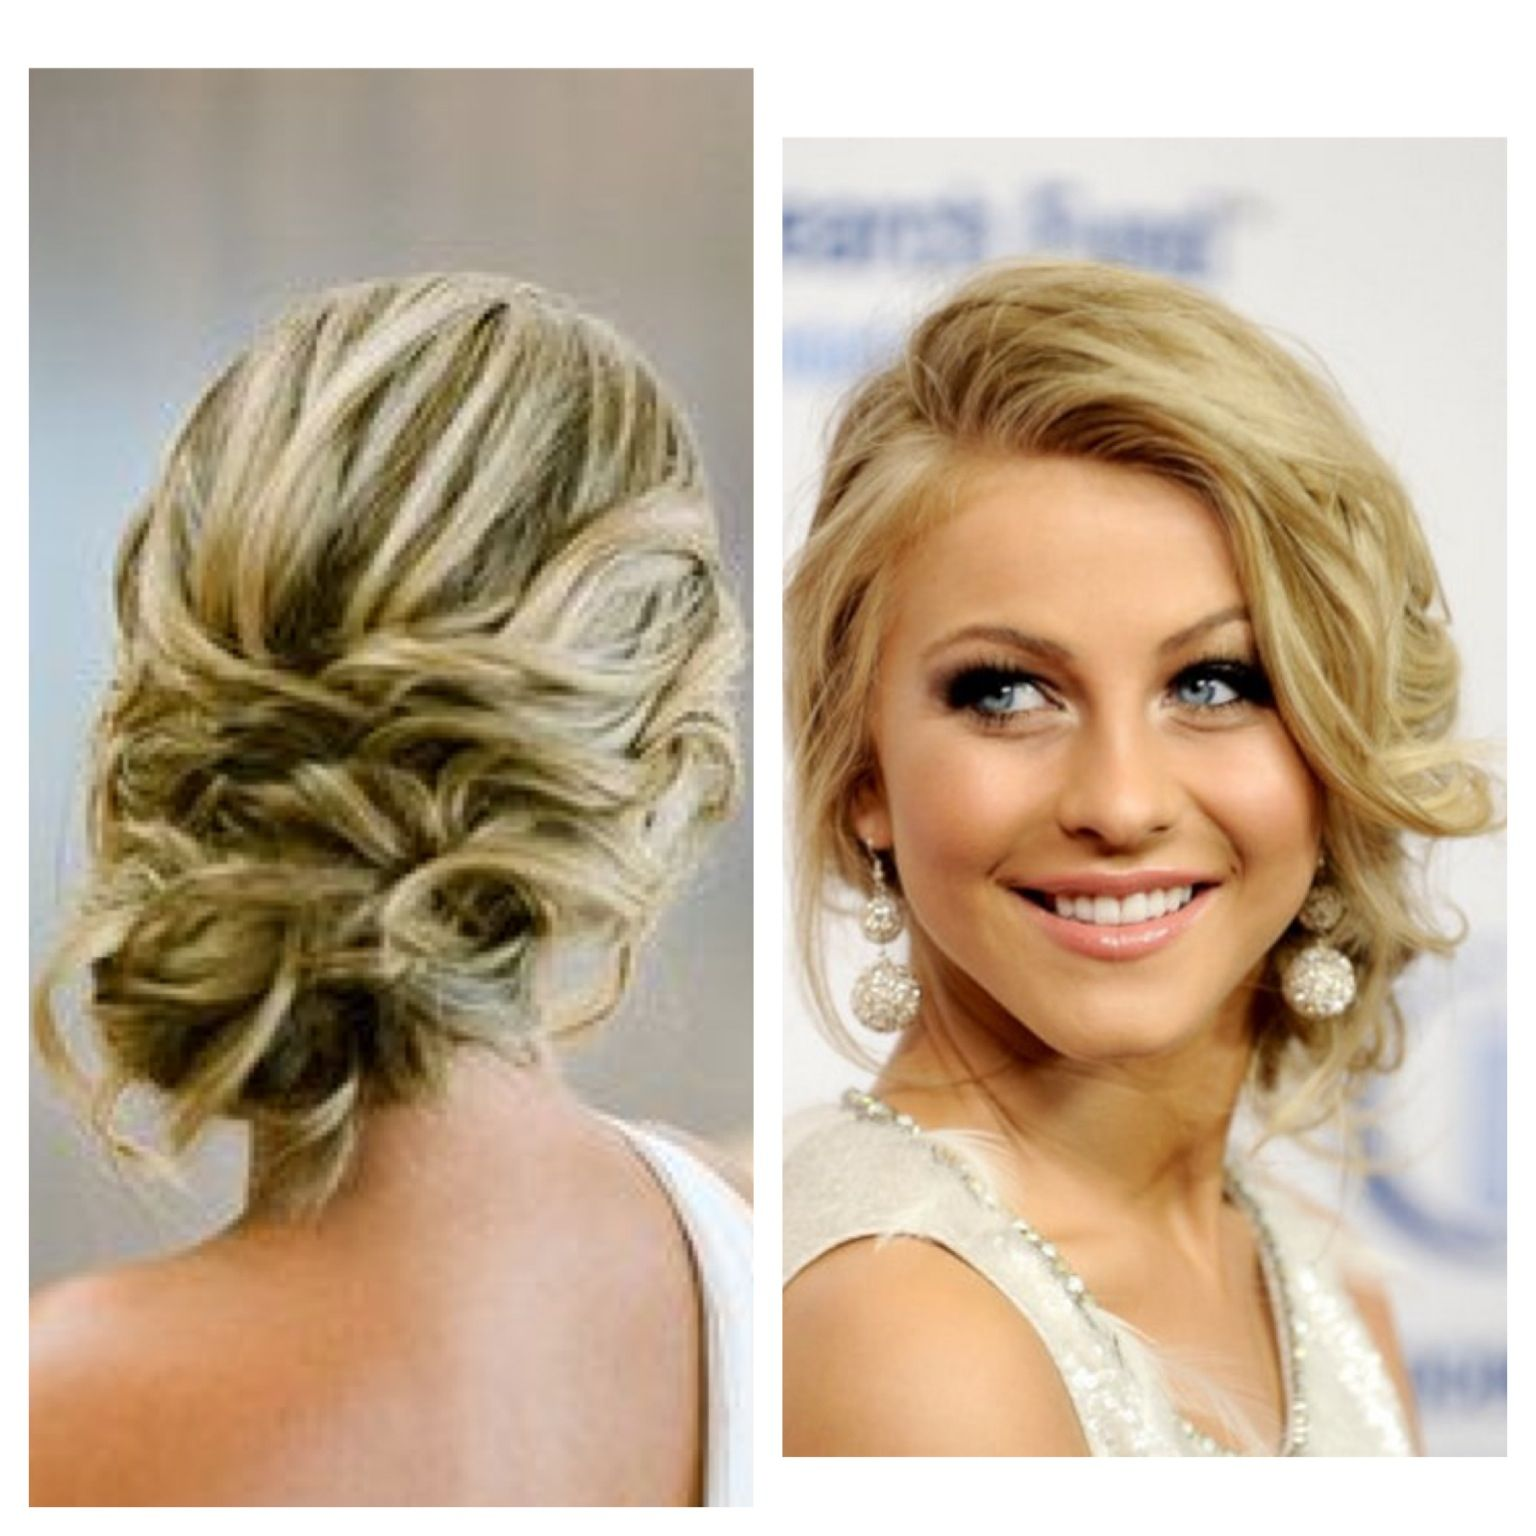 Side Ponytail Hairstyles Have Never Been So Varied And Imaginative